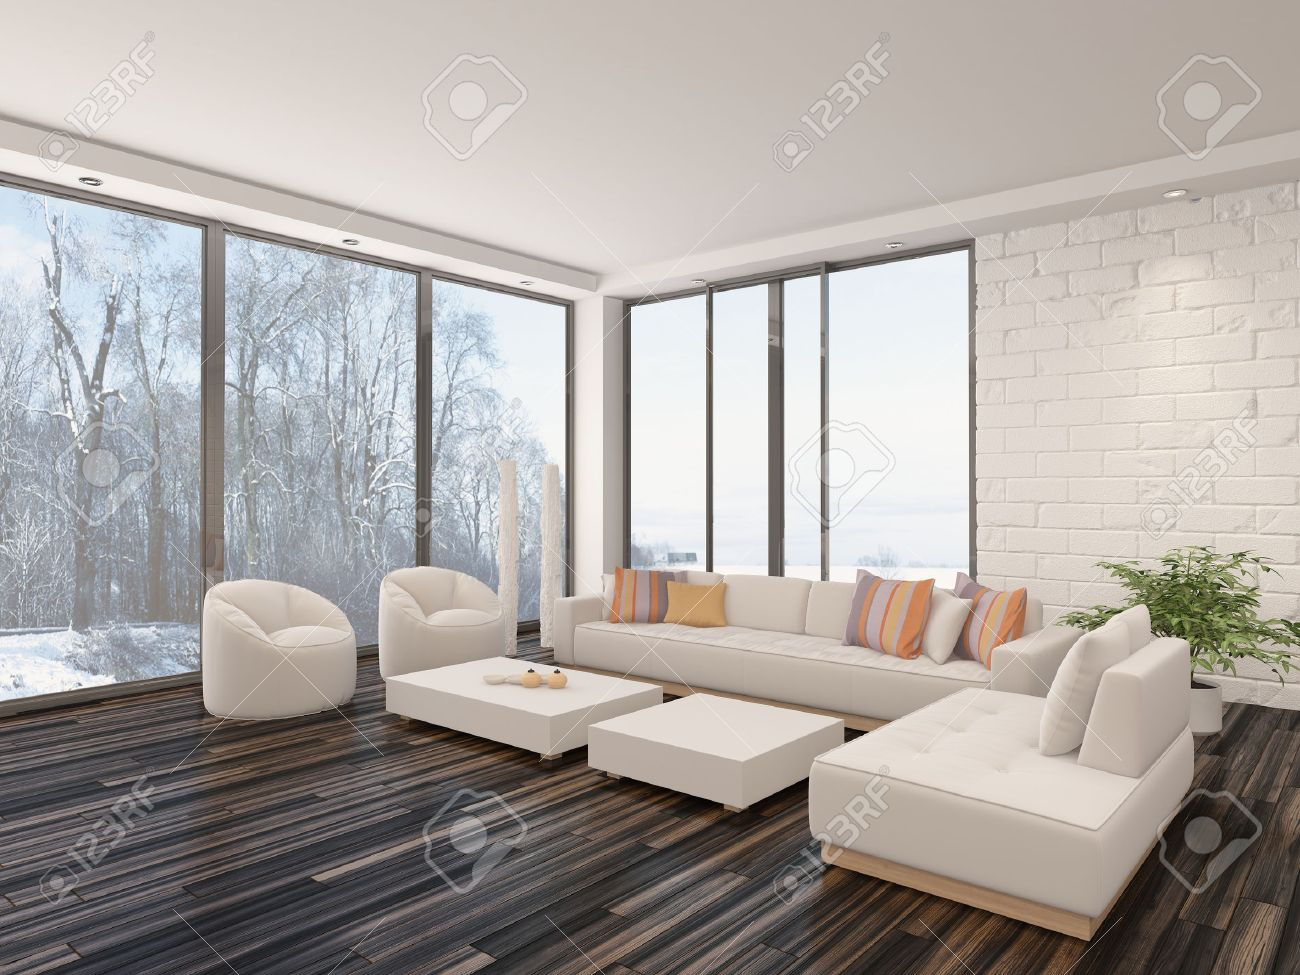 Modern Minimalist Sitting Room Interior With A Bare Wooden Parquet Floor Contemporary Upholstered Lounge Suite